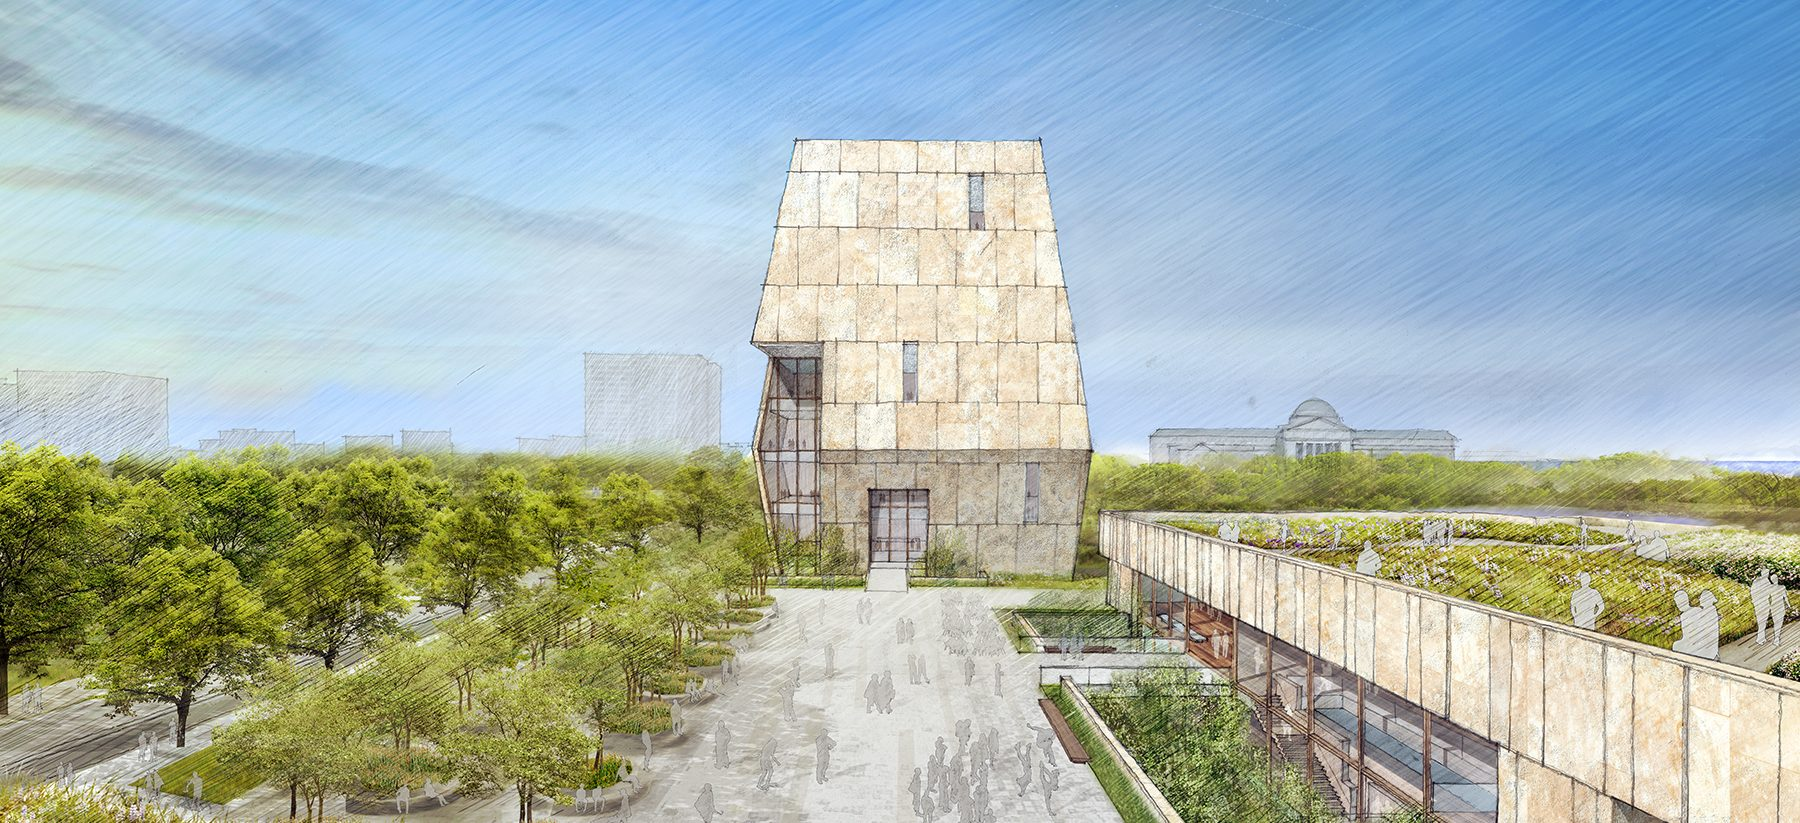 Concept designs for the Obama Presidential Center